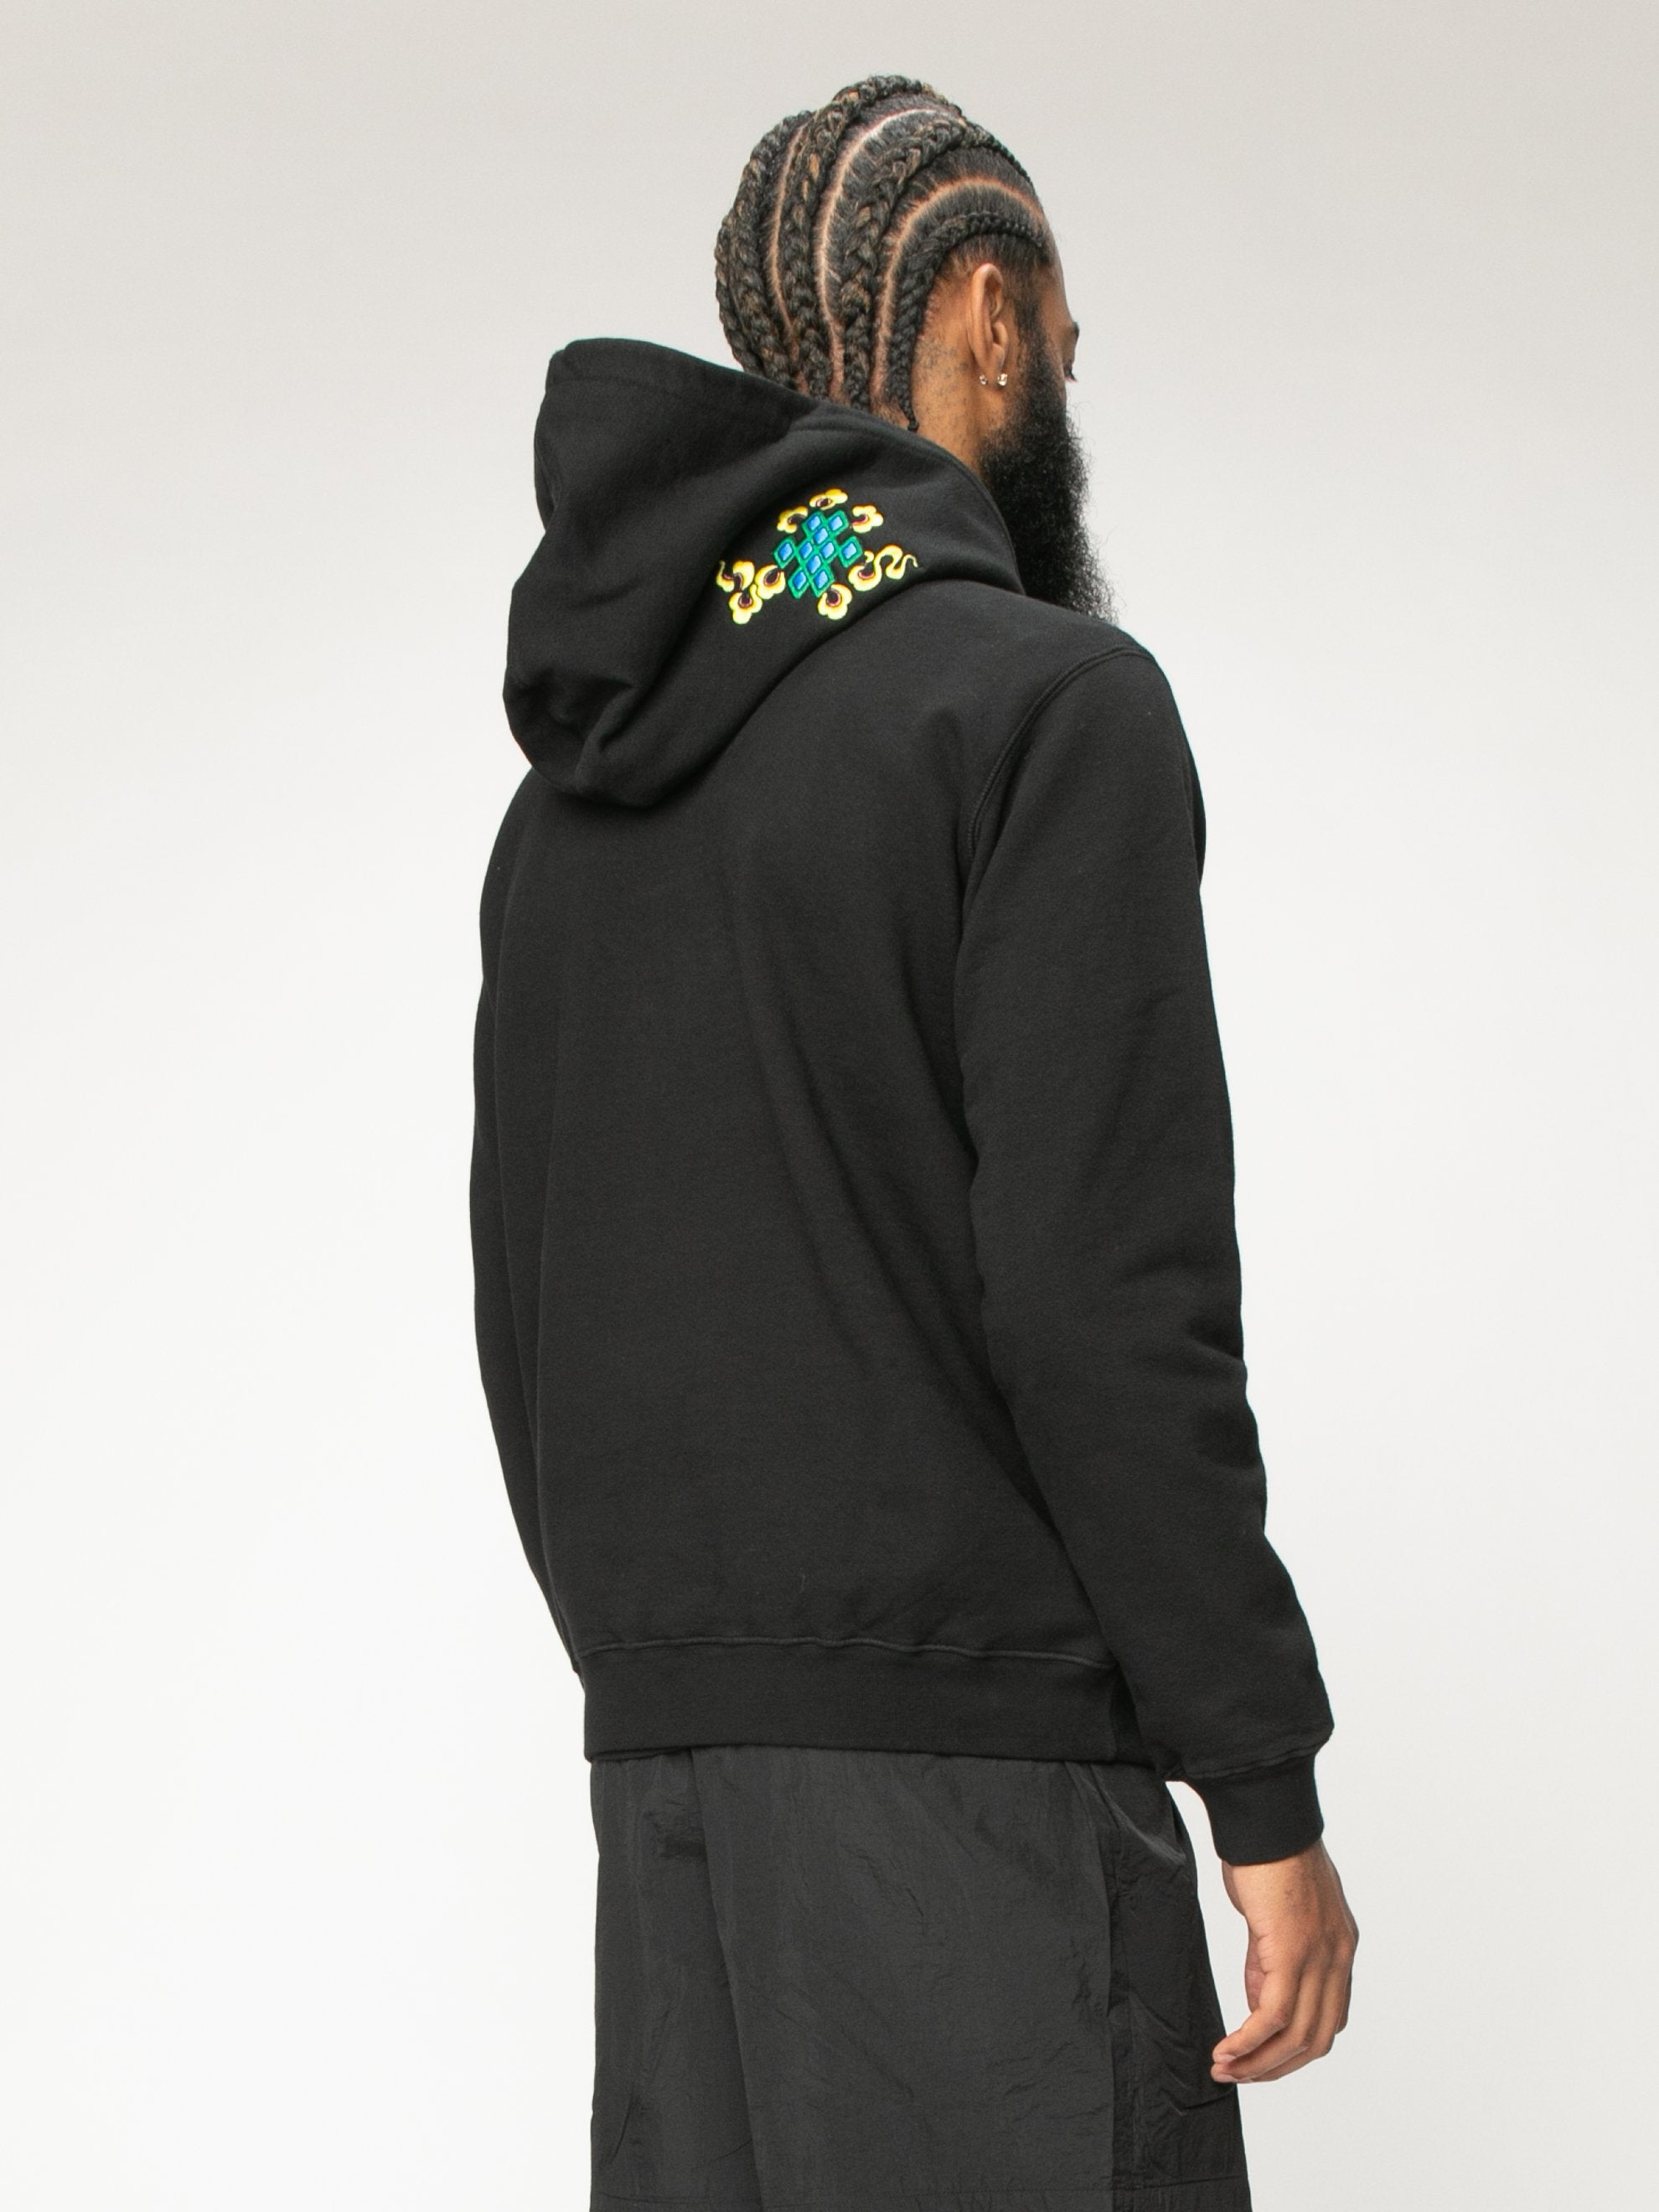 Black 999 Embrodered Hoody 5